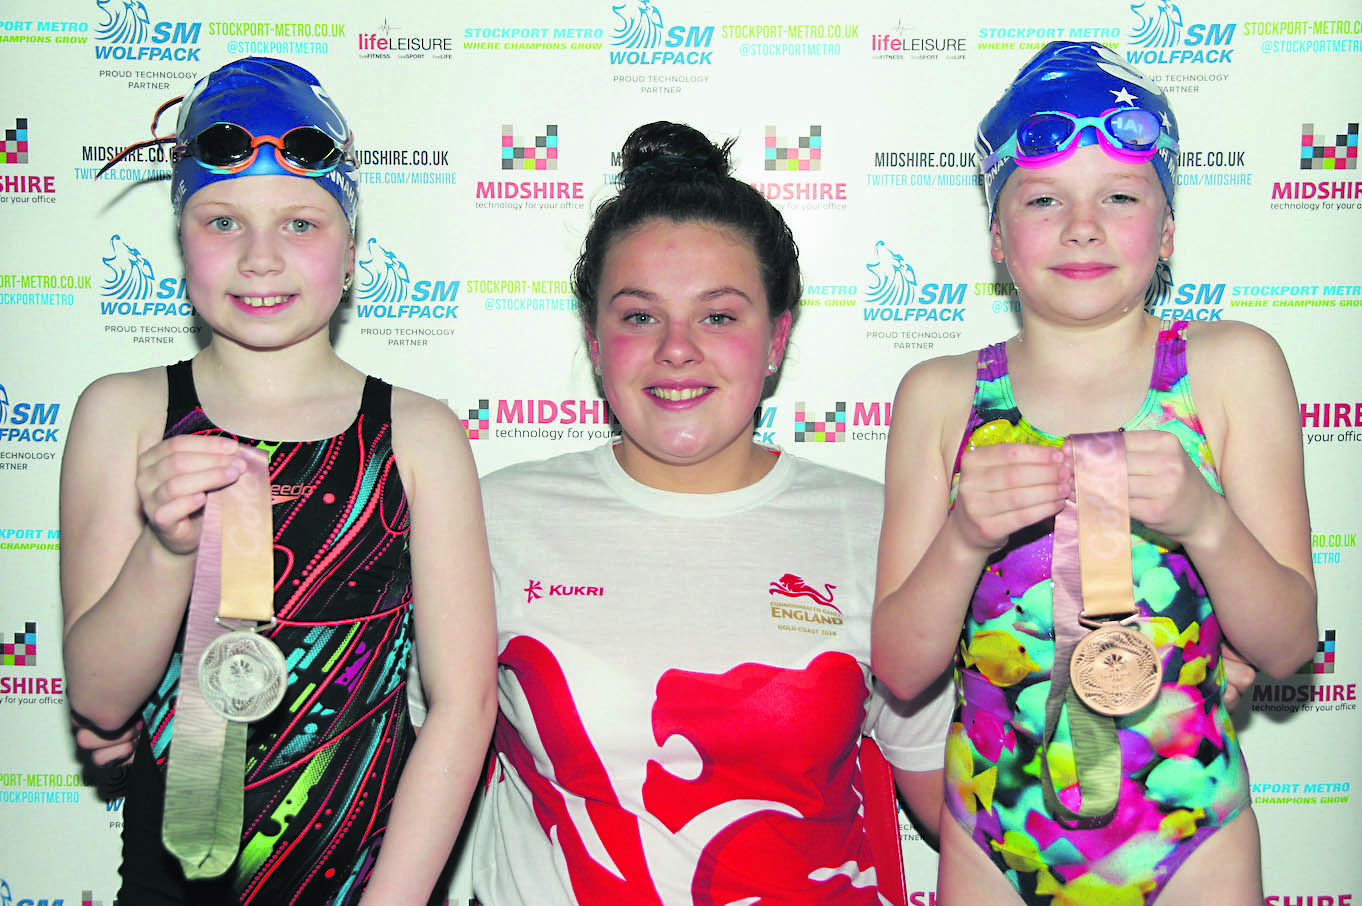 HOLLY BRINGS HOME DOUBLE MEDAL HAUL